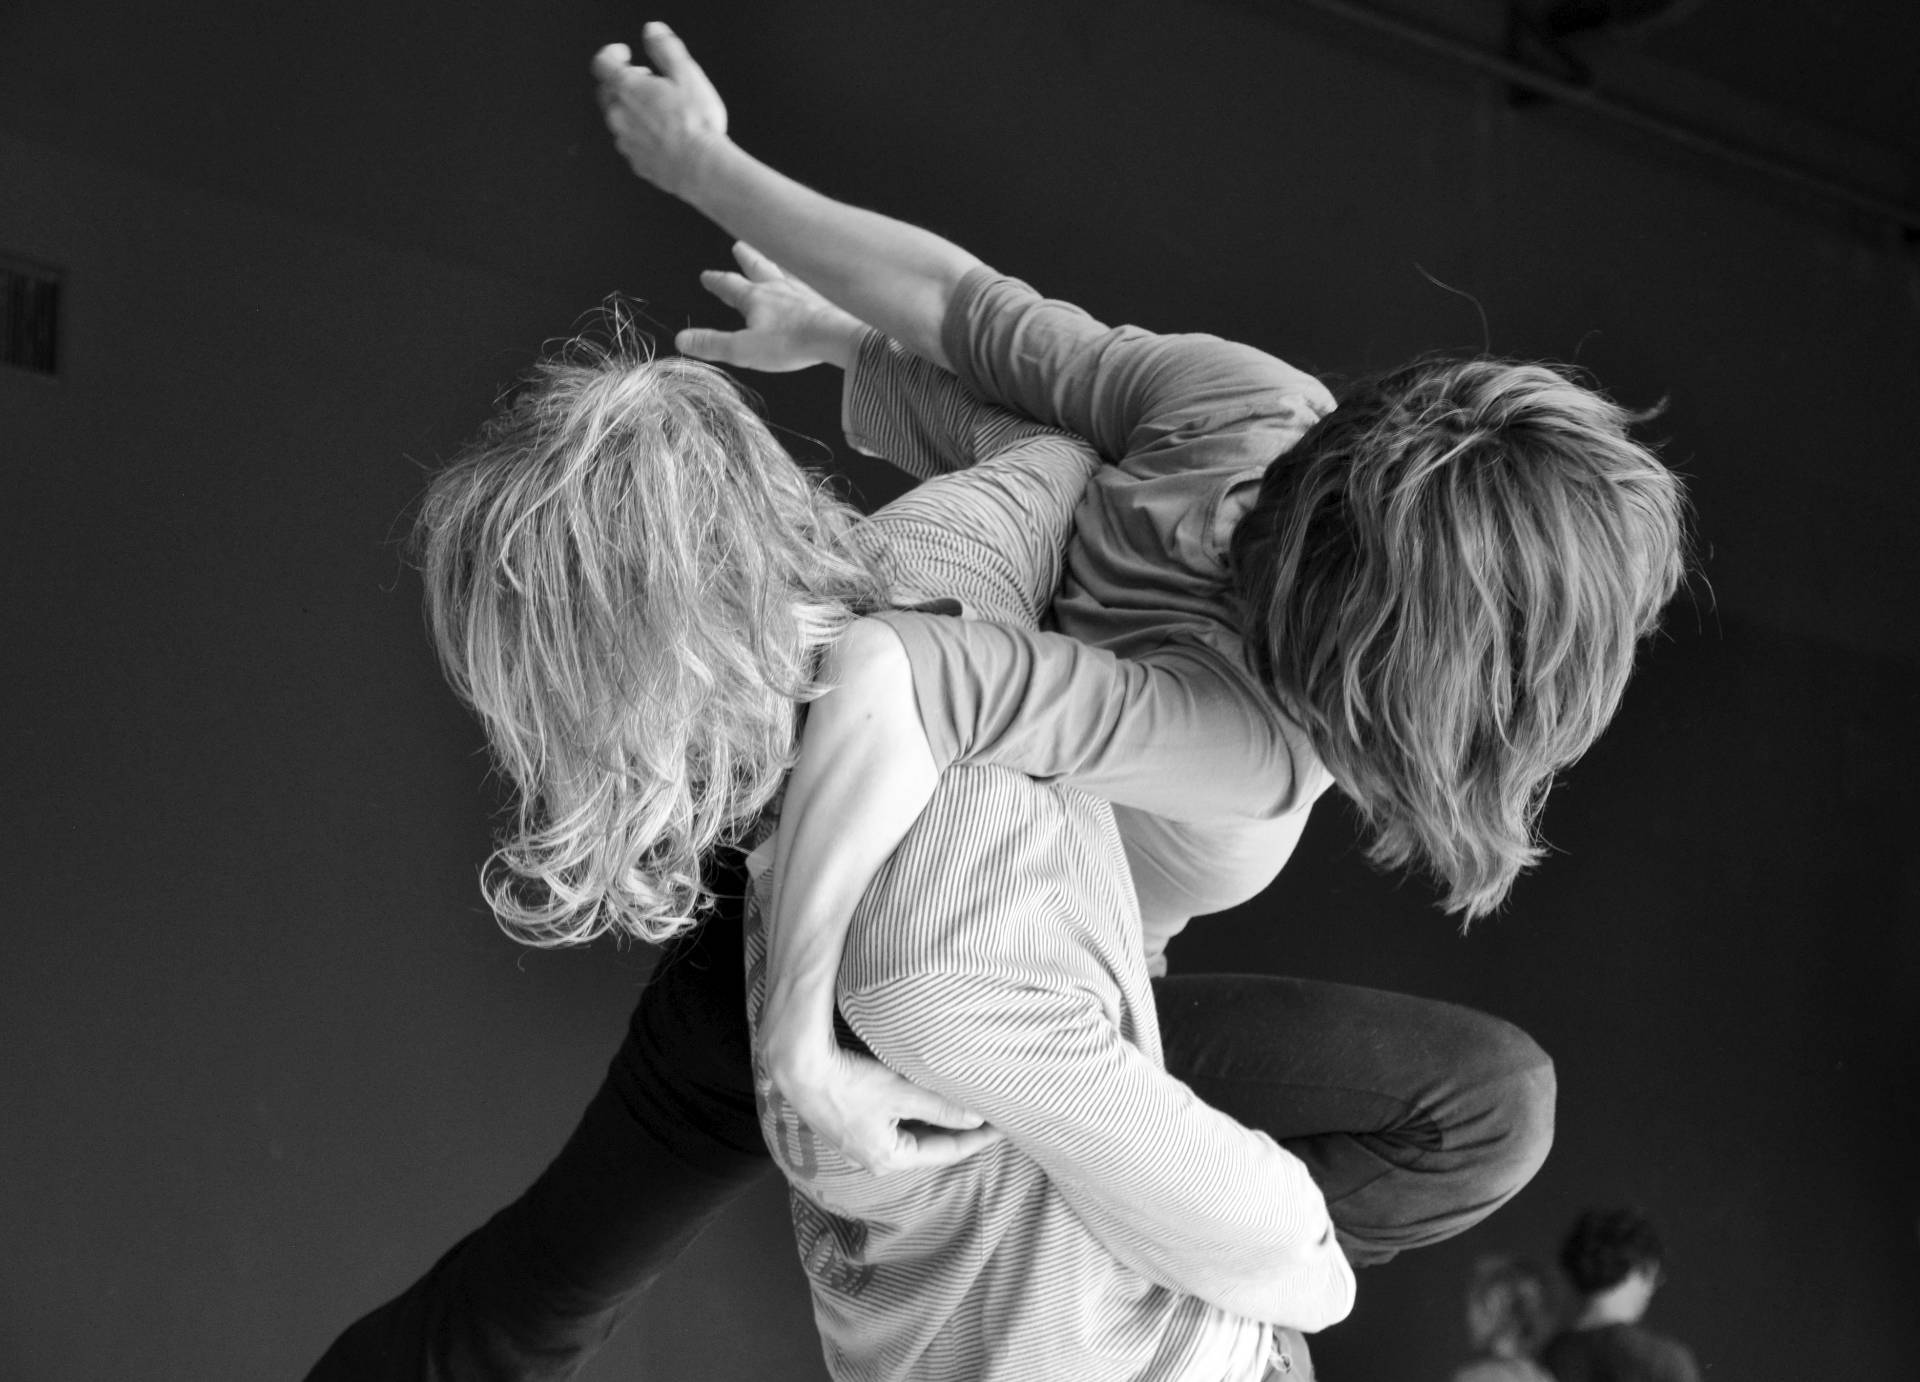 alice-le-guiffant-contact-improvisation-duo-dos